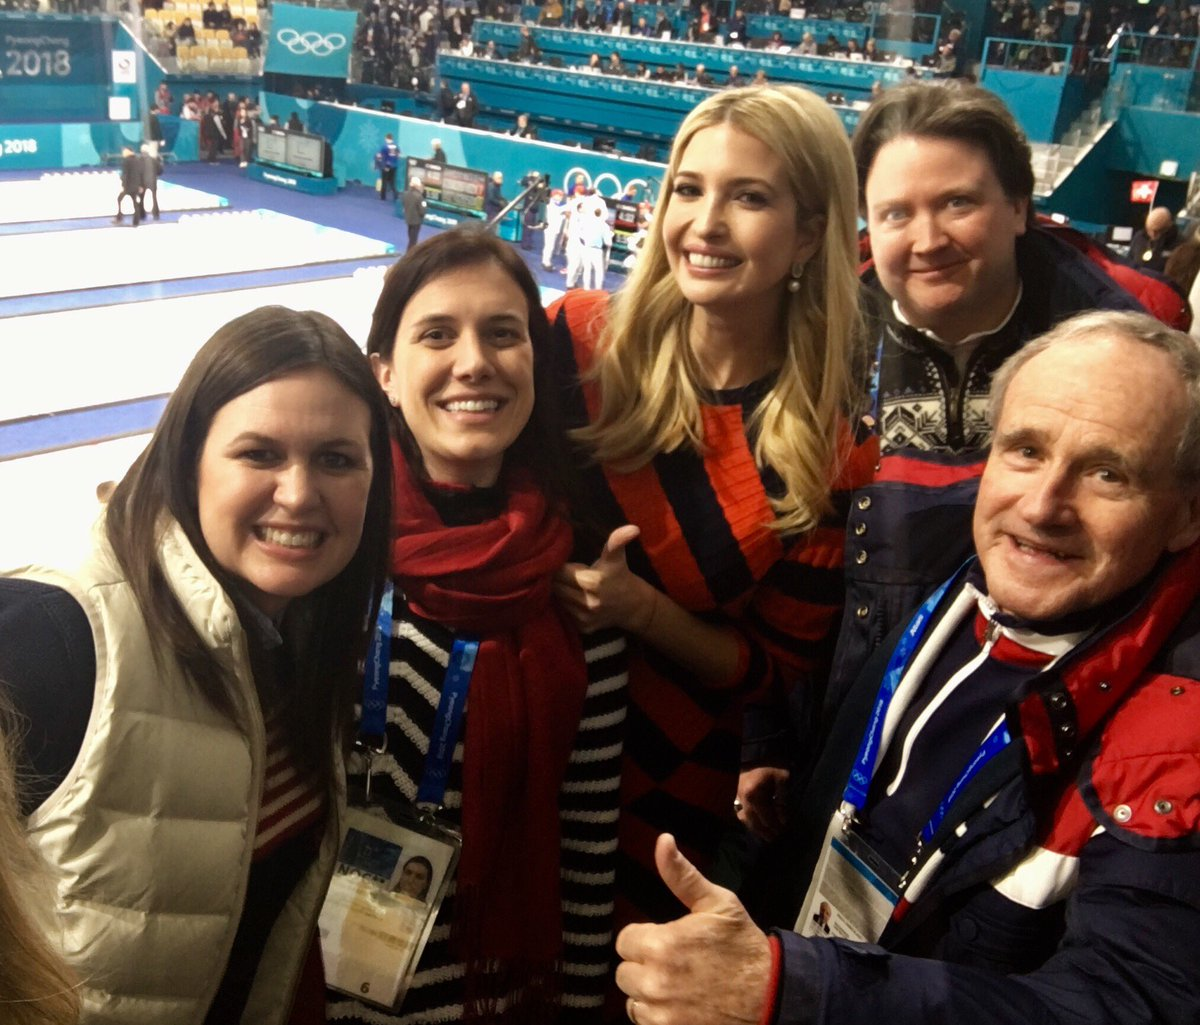 US Men's Curling Team Wins Gol curling